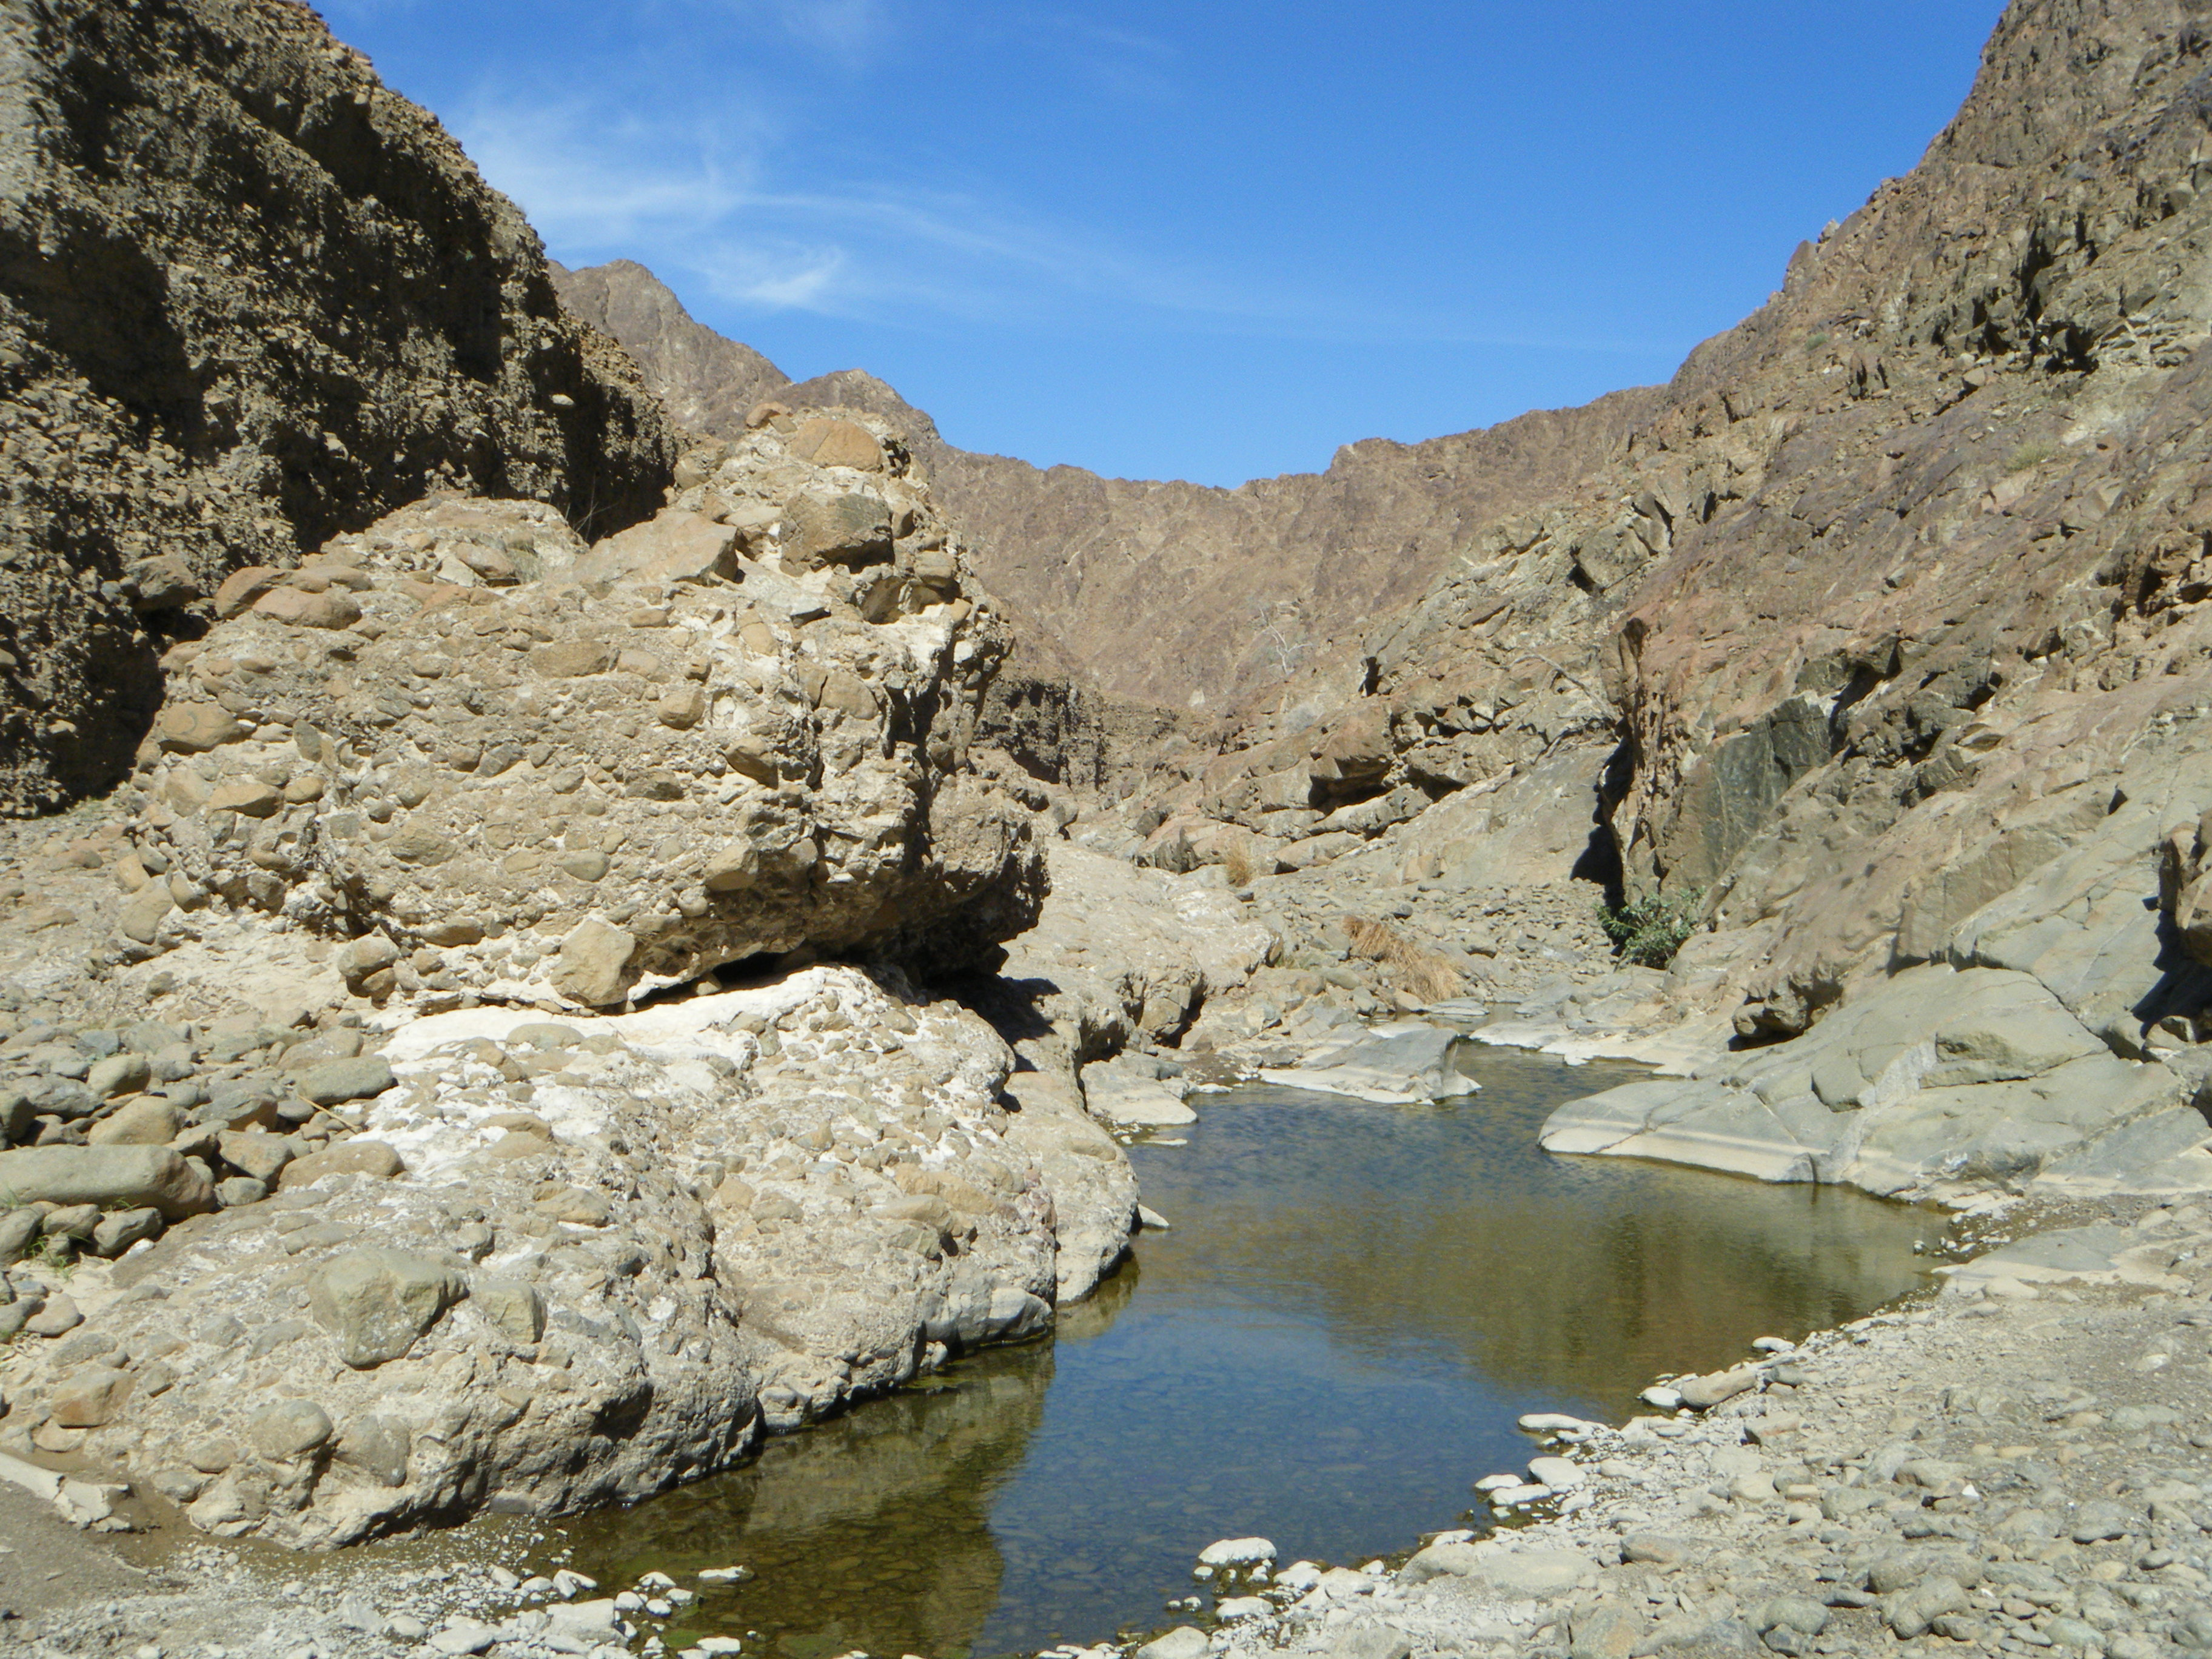 Emirates Wildlife Society-WWF Congratulates the Government of Fujairah on the addition of Wadi Wurayah to UNESCO's World Network of Biosphere Reserves